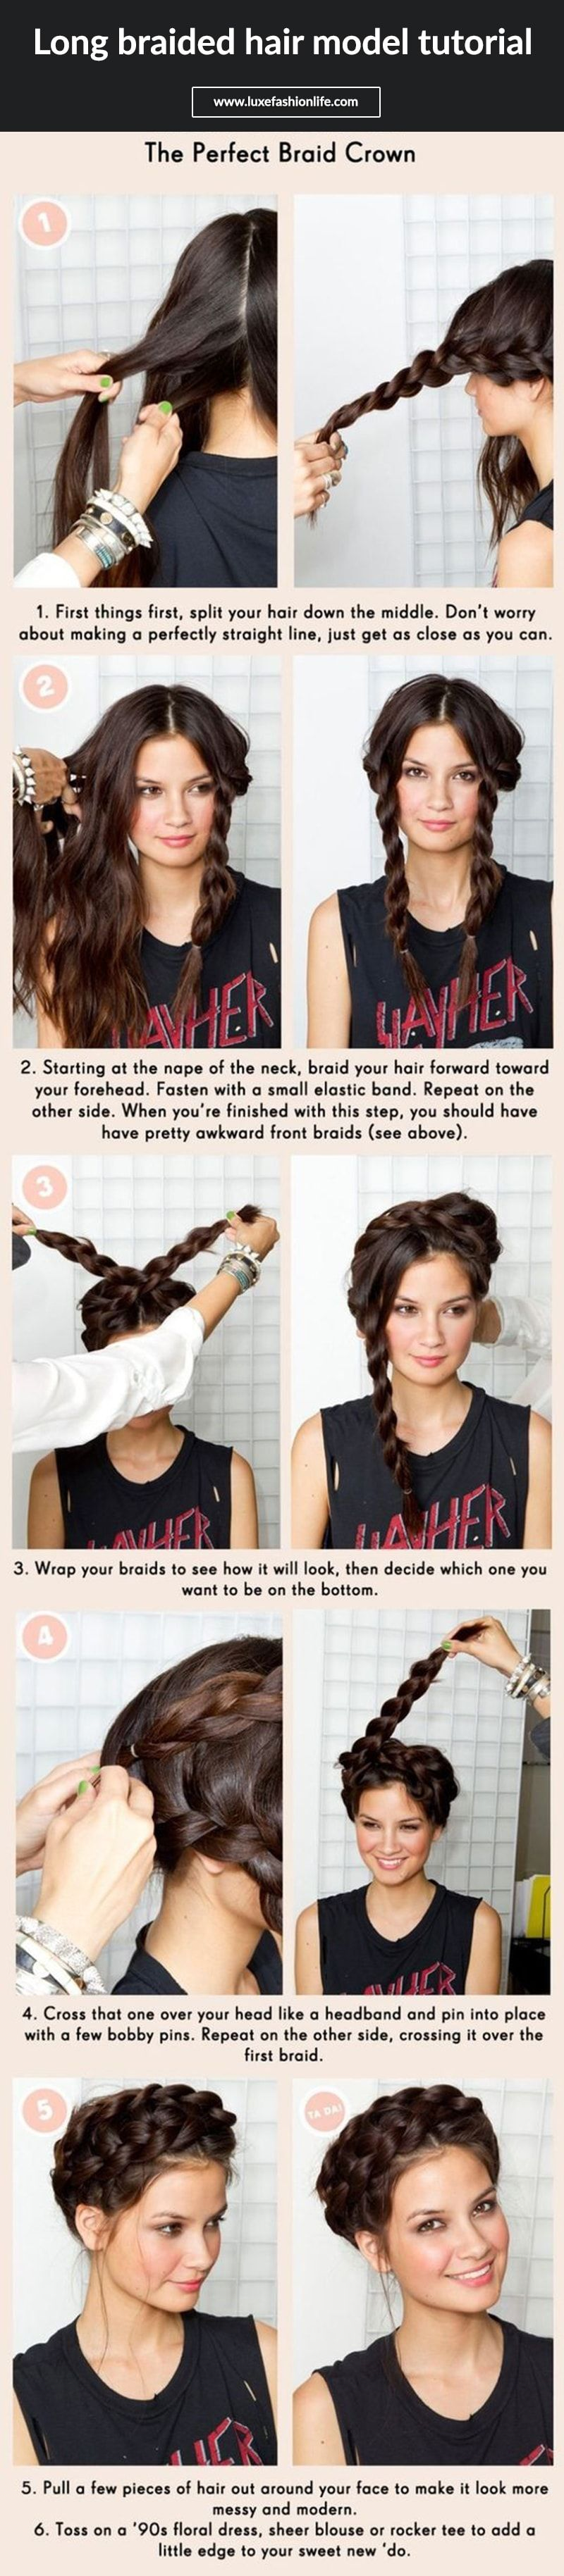 5 Minute Hairstyles For Girls Long Braided Hairstyle Tutorials Hairstyle Pinterest Braids